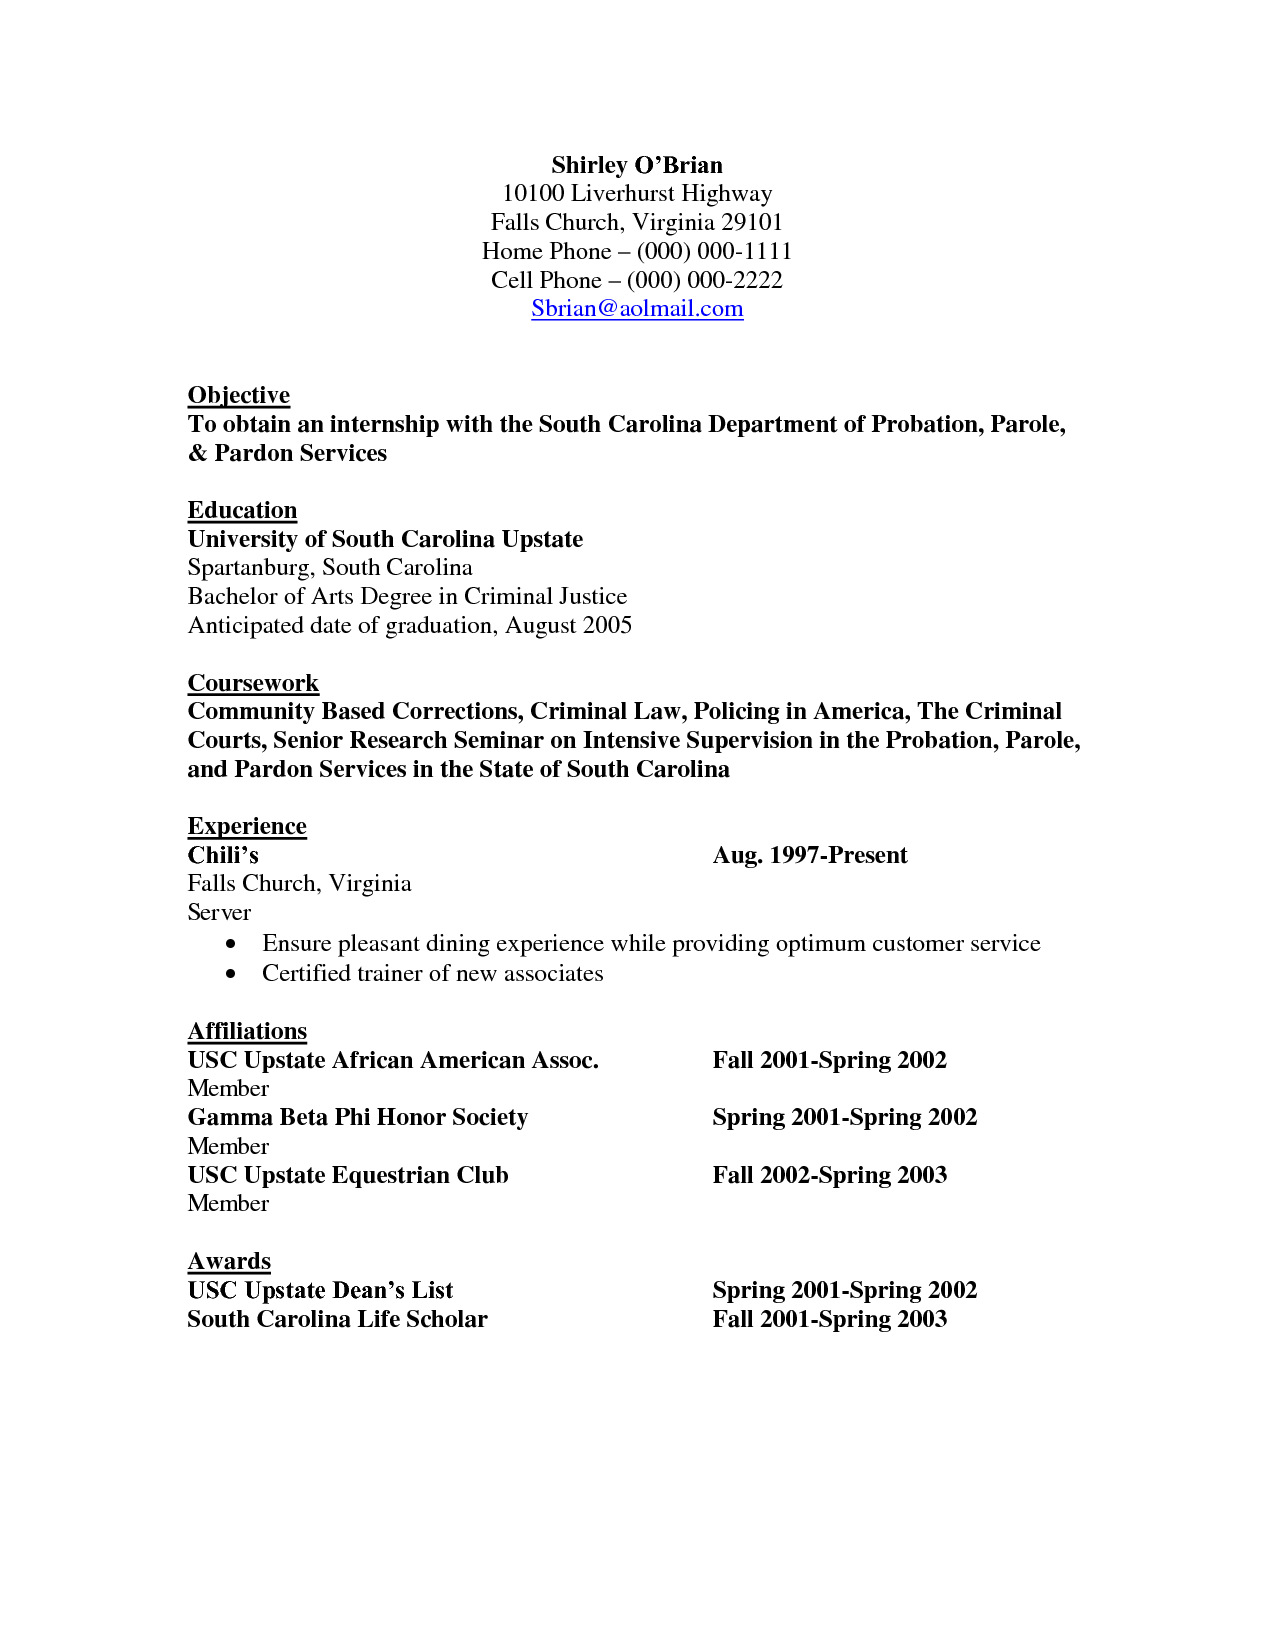 Resume Templates Tamu Adorable Objective Resume Criminal Justice  Httpwwwresumecareer